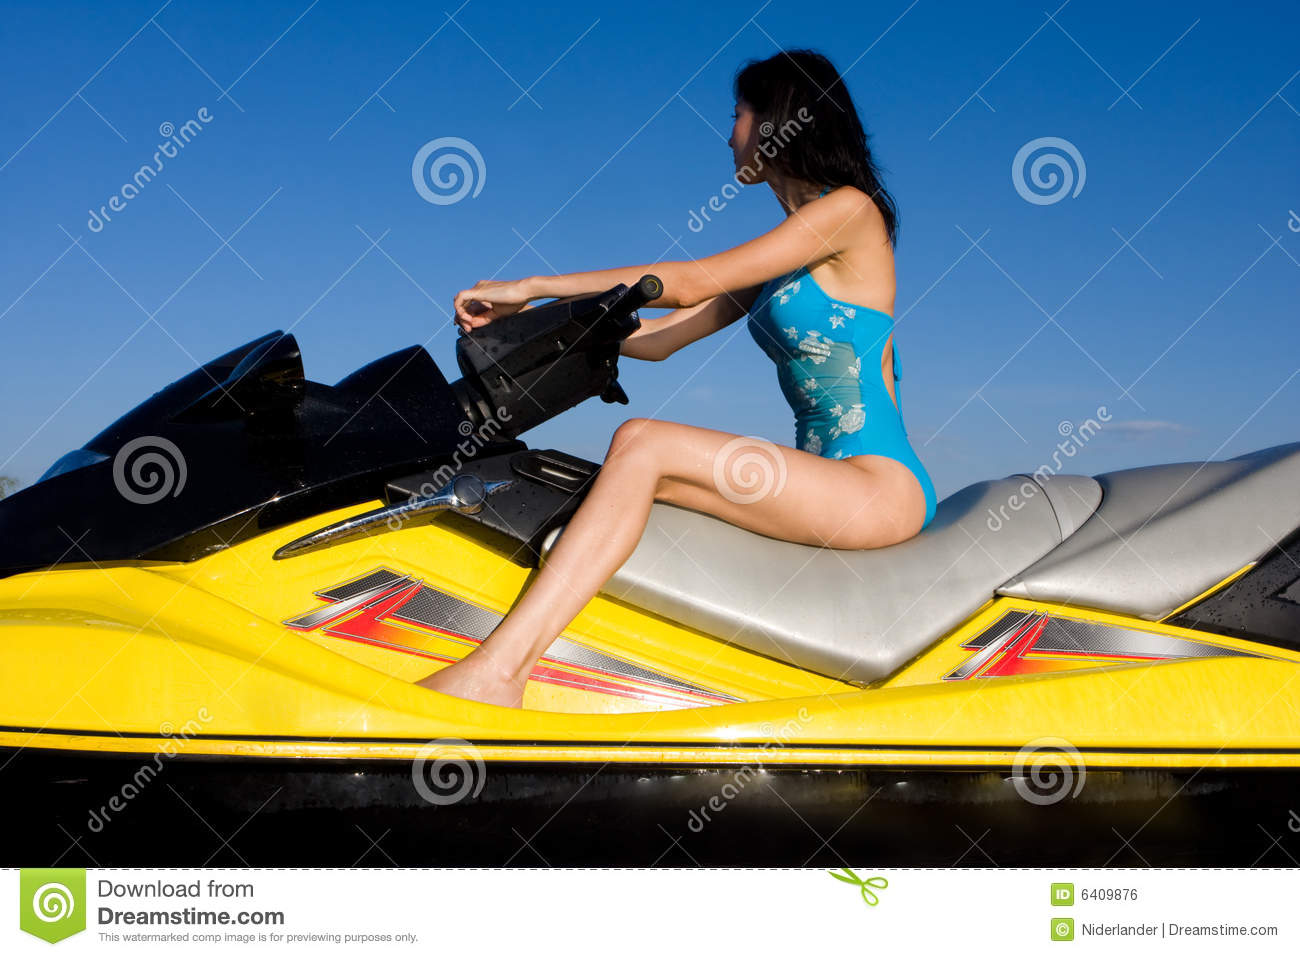 ... Girl Sitting On Jet Ski Royalty Free Stock Image - Image: 6409876